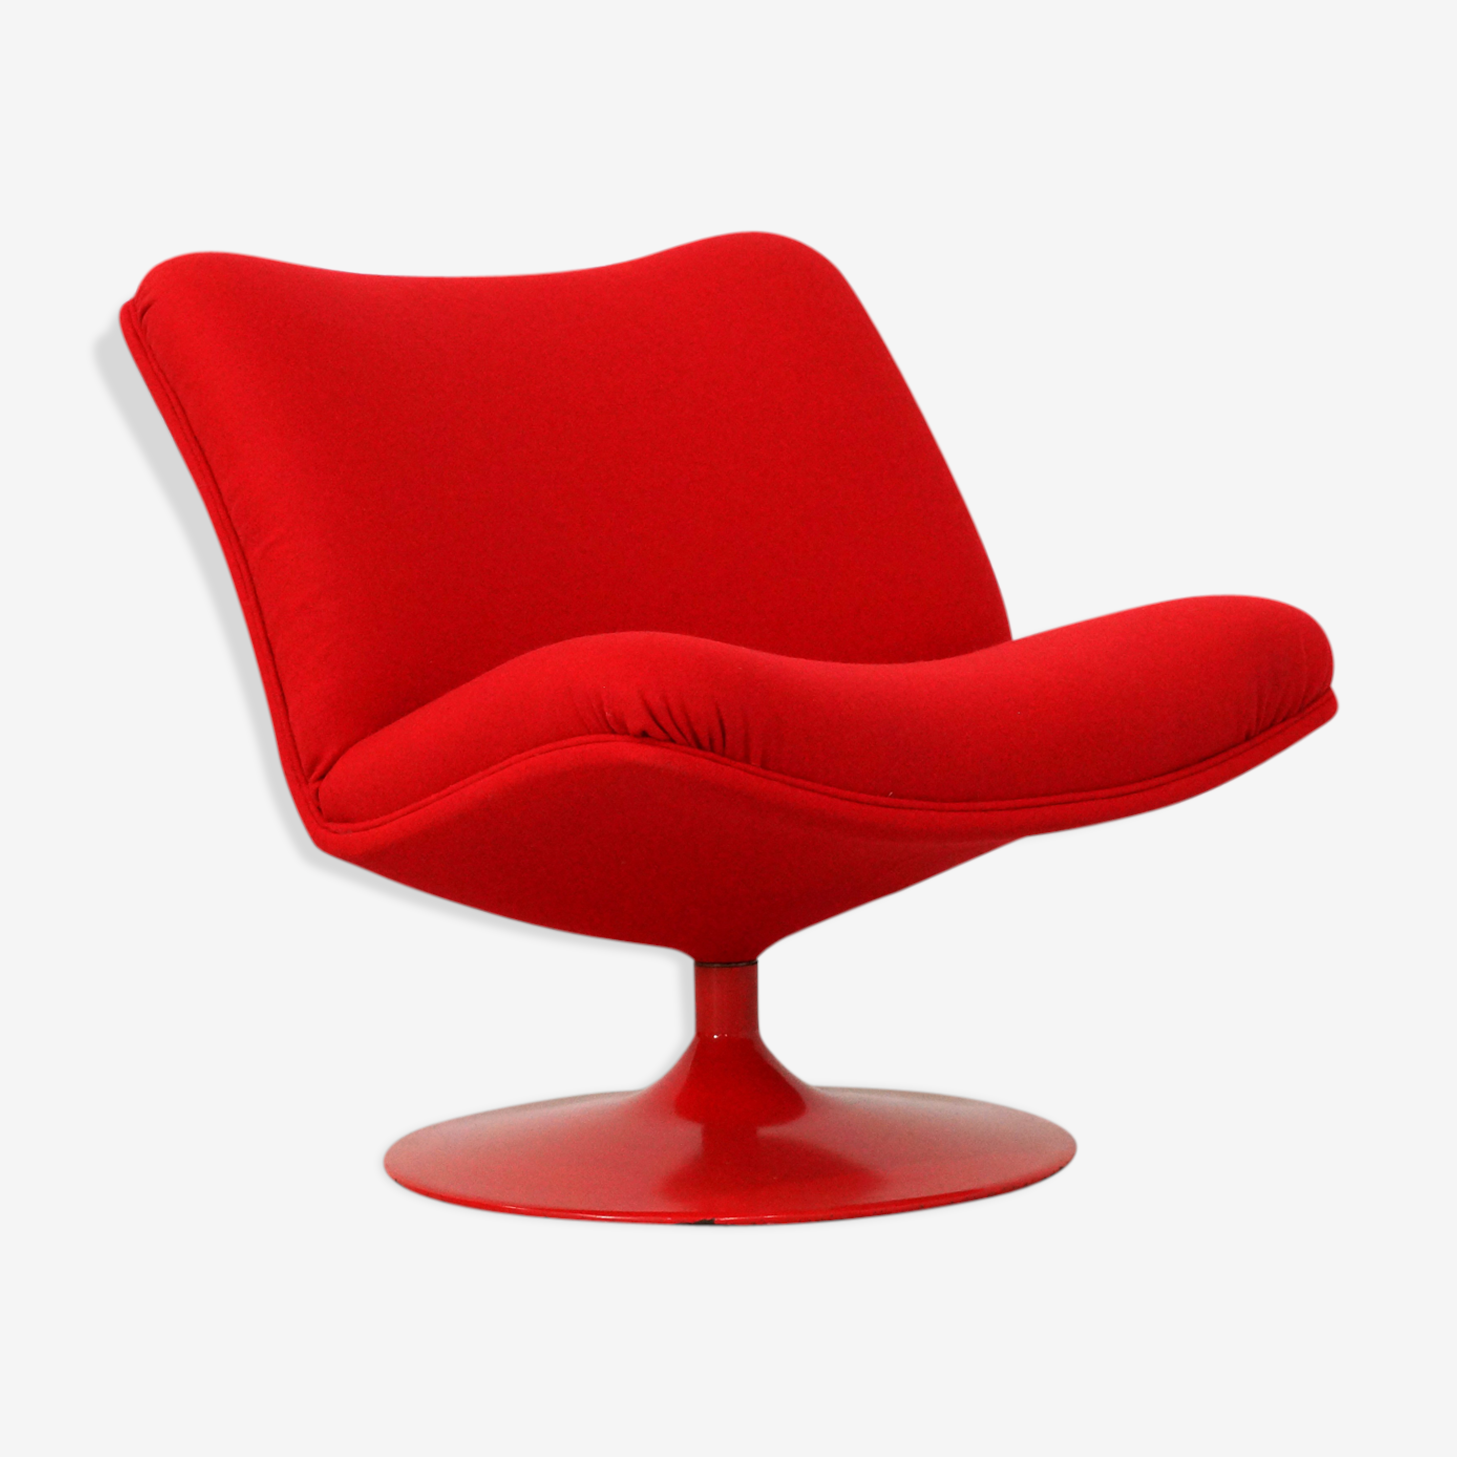 Red lounge chair by Geoffrey Harcourt for Artifort model f504